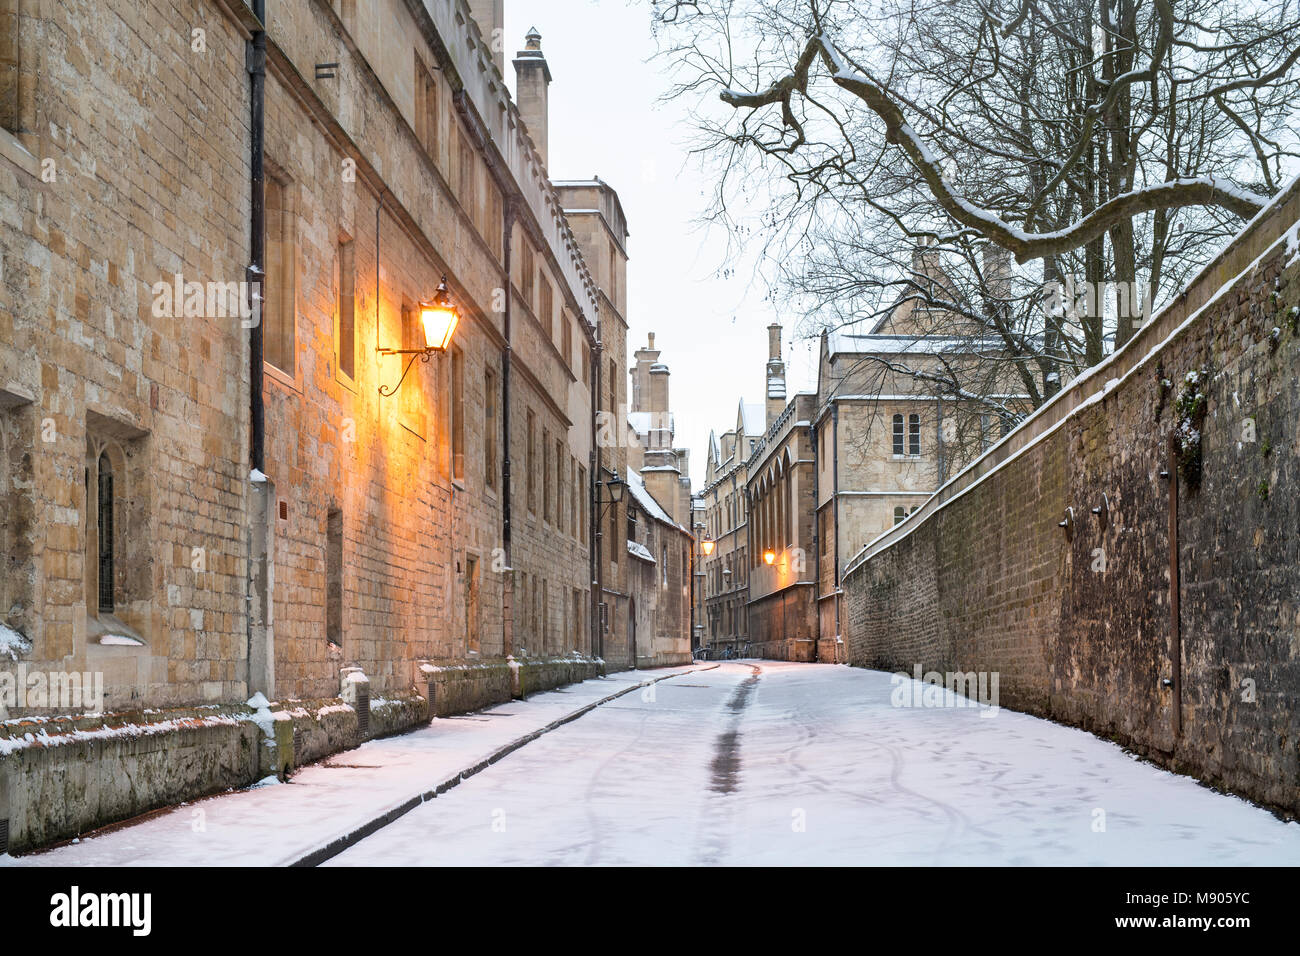 Brasenose lane in the early morning snow. Oxford, Oxfordshire, England - Stock Image